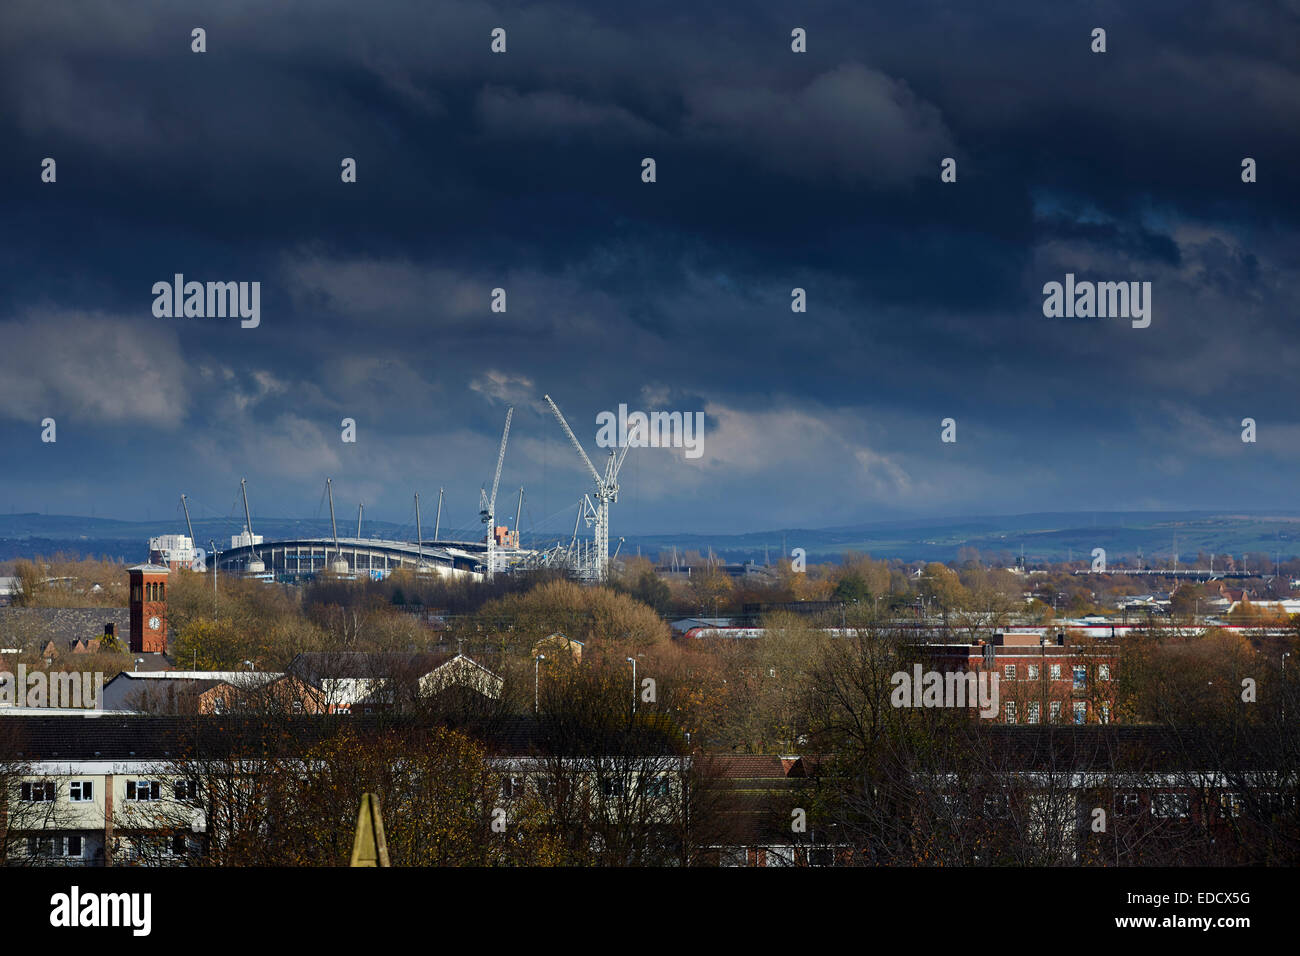 Manchester Etihad Stadium on the skyline with a Virgin train passing - Stock Image